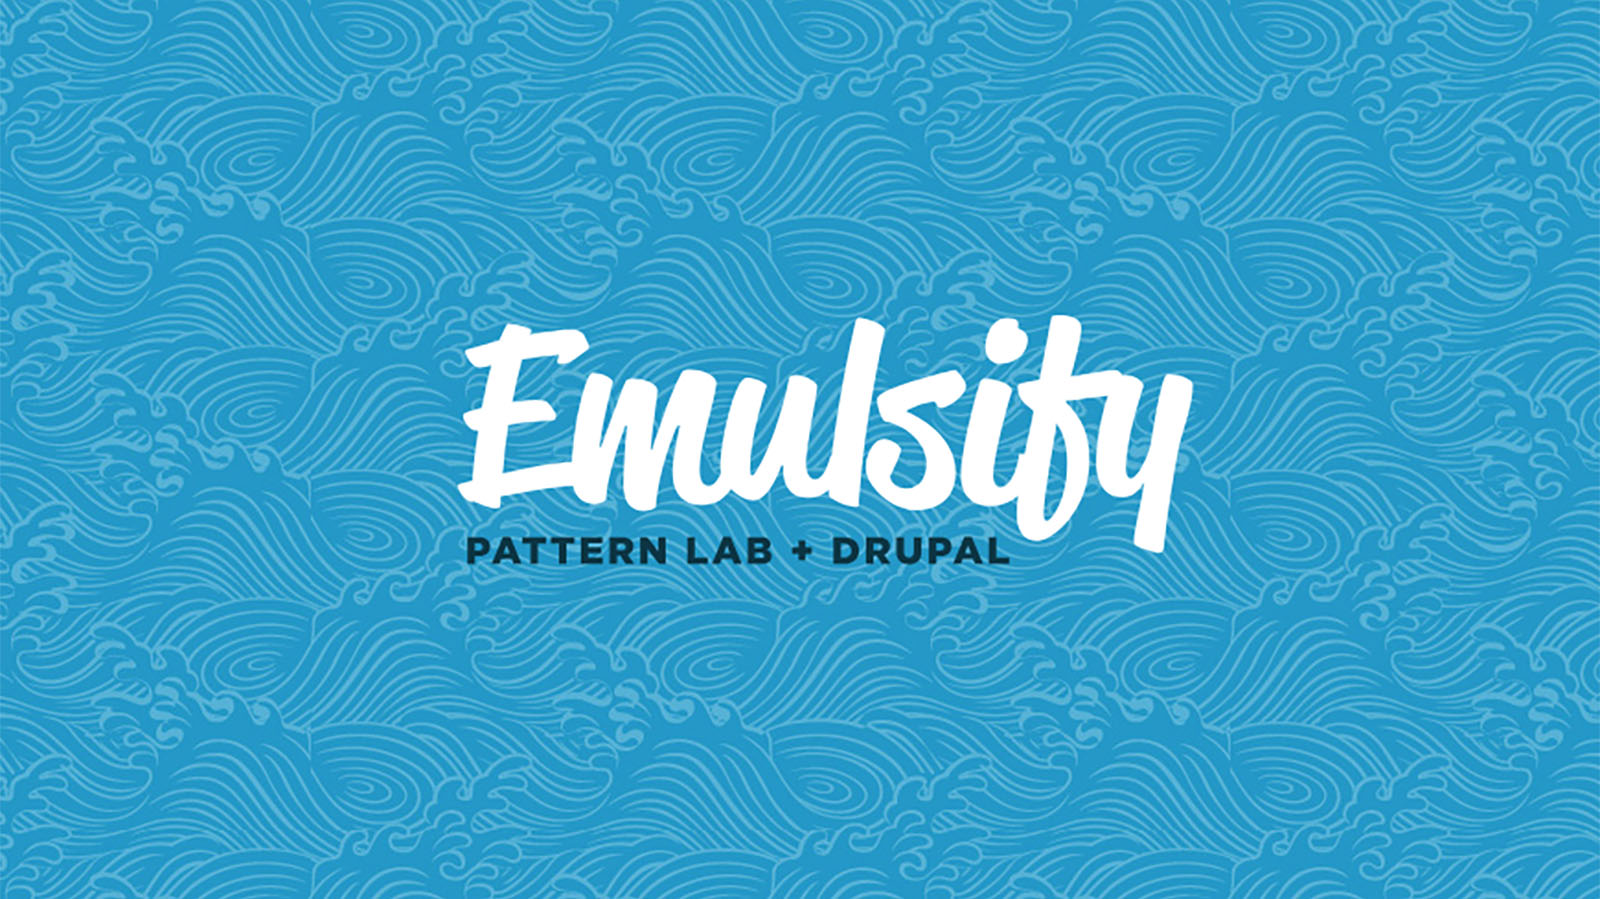 Emulsify Drupal Theme Logo by Four Kitchens.